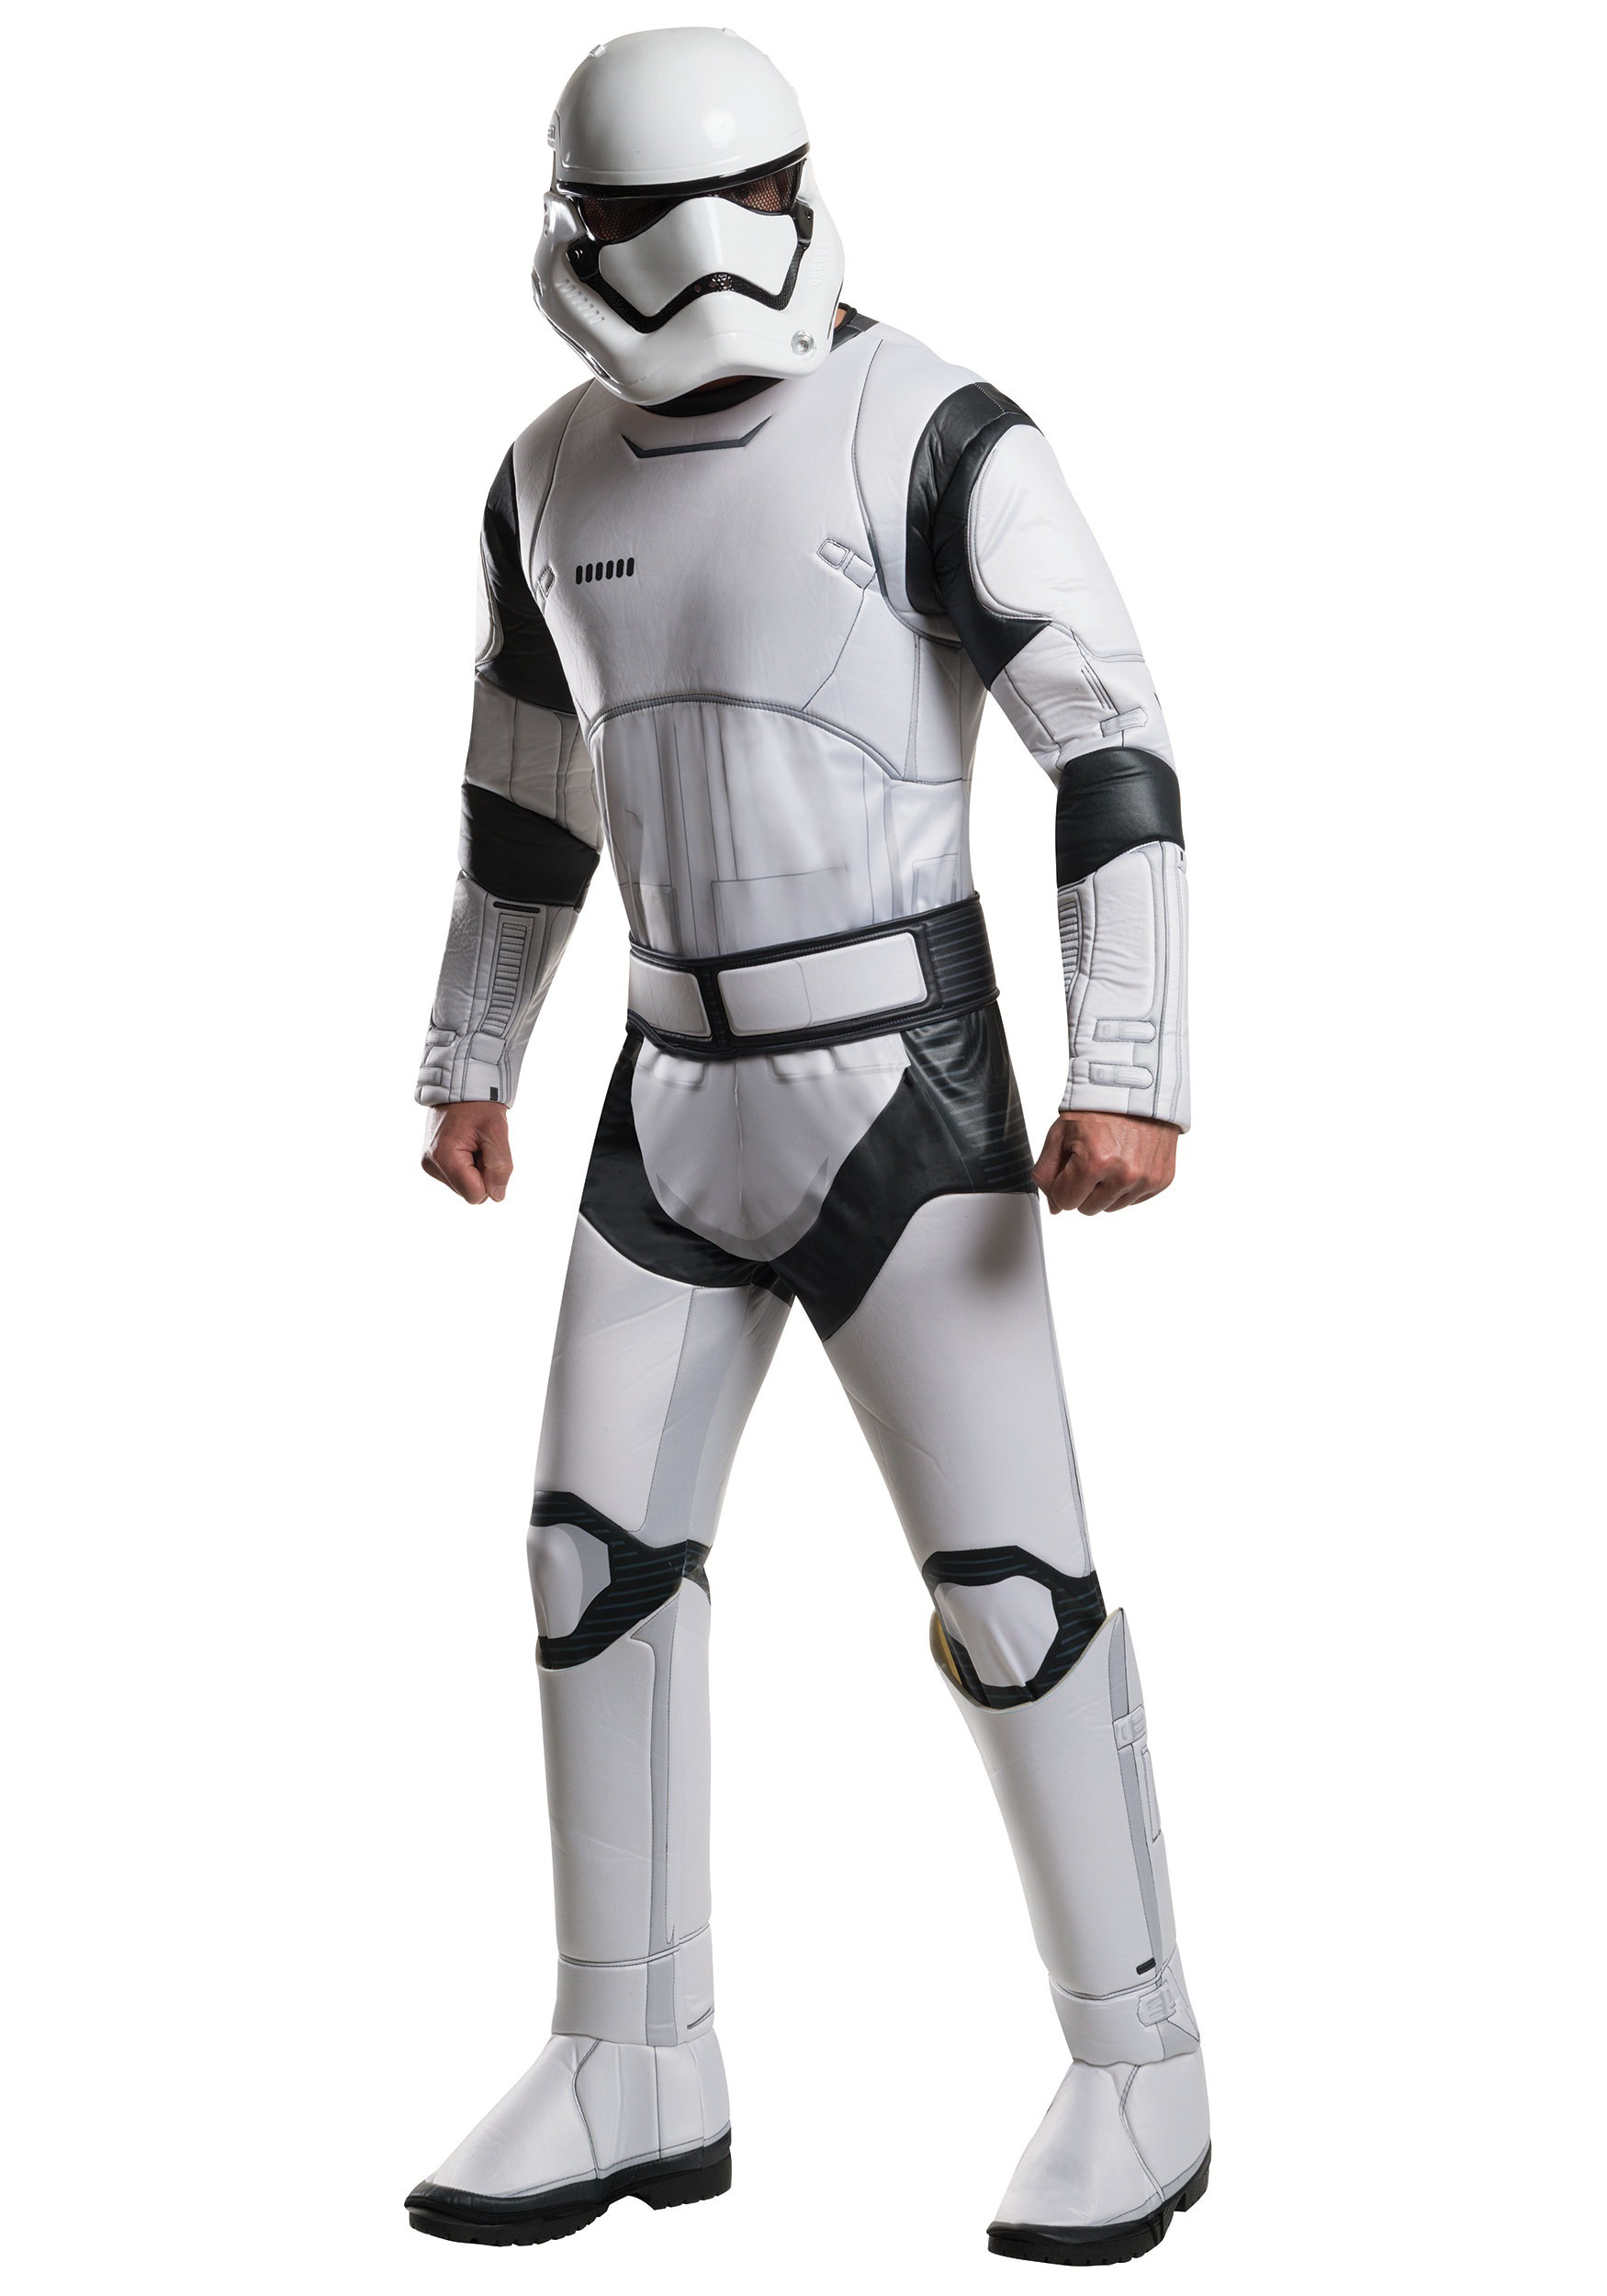 Adult Deluxe Star Wars Force Awakens Stormtrooper Costume RU810672